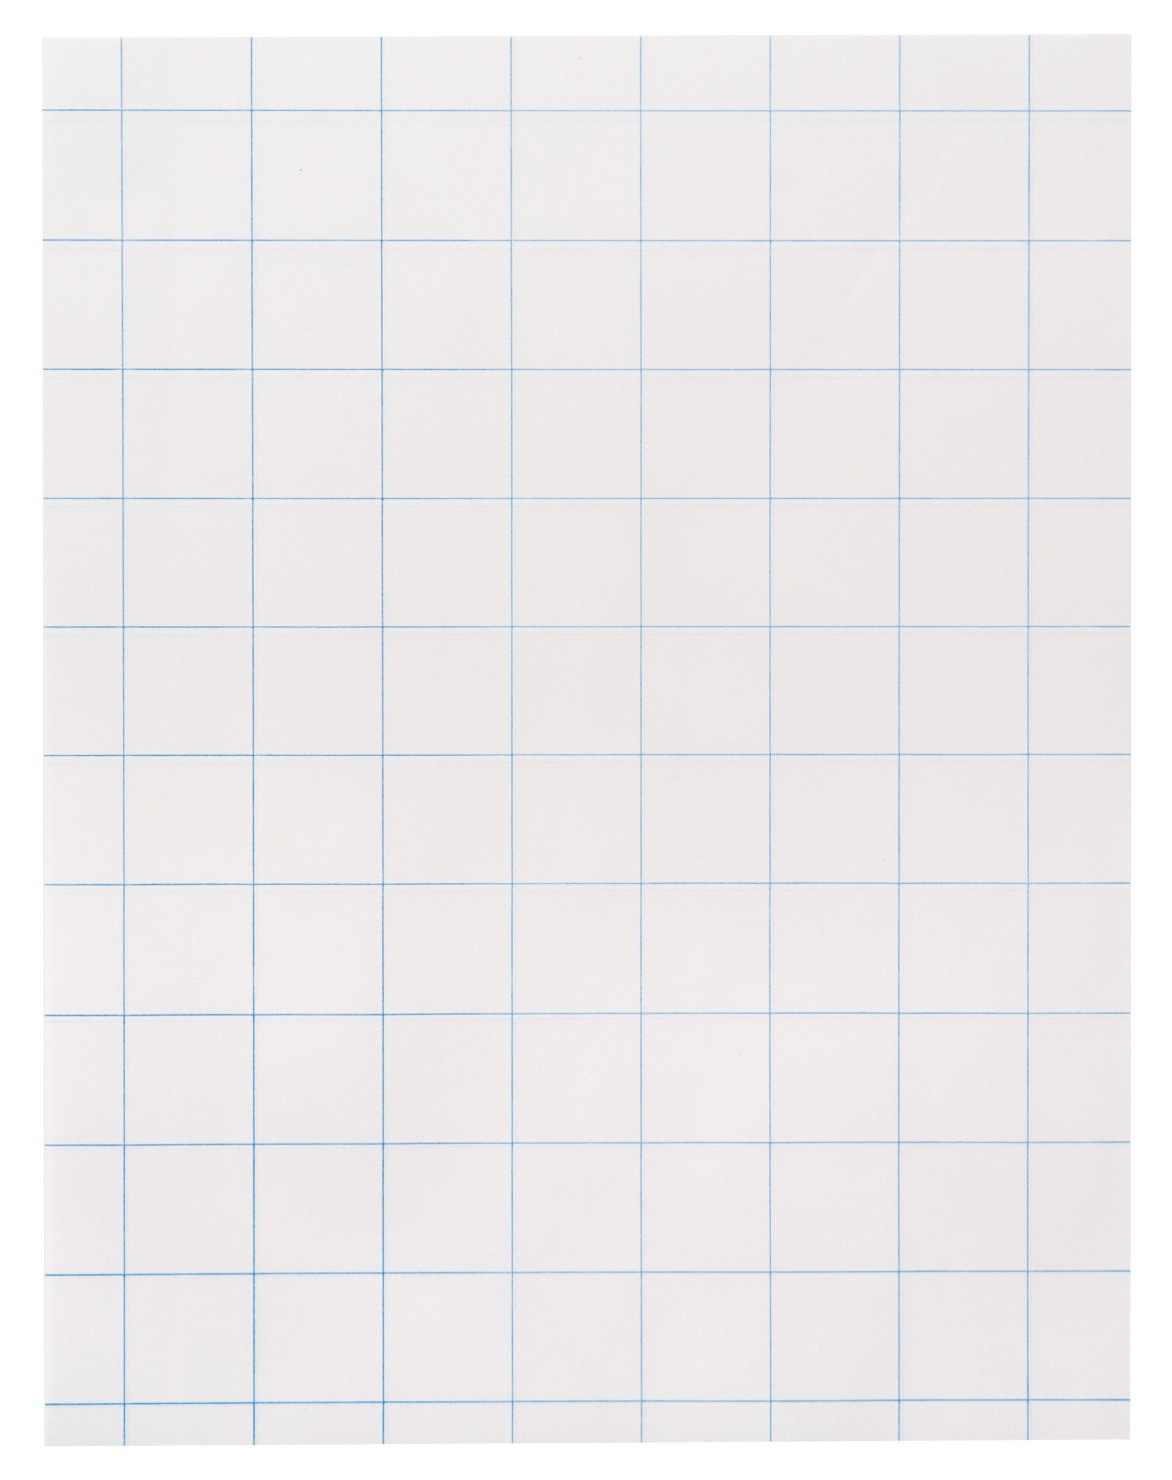 8-1/2 X 11 Graph Paper, 1 In. Rule, White, 15#, Two Sides - 500/Ream